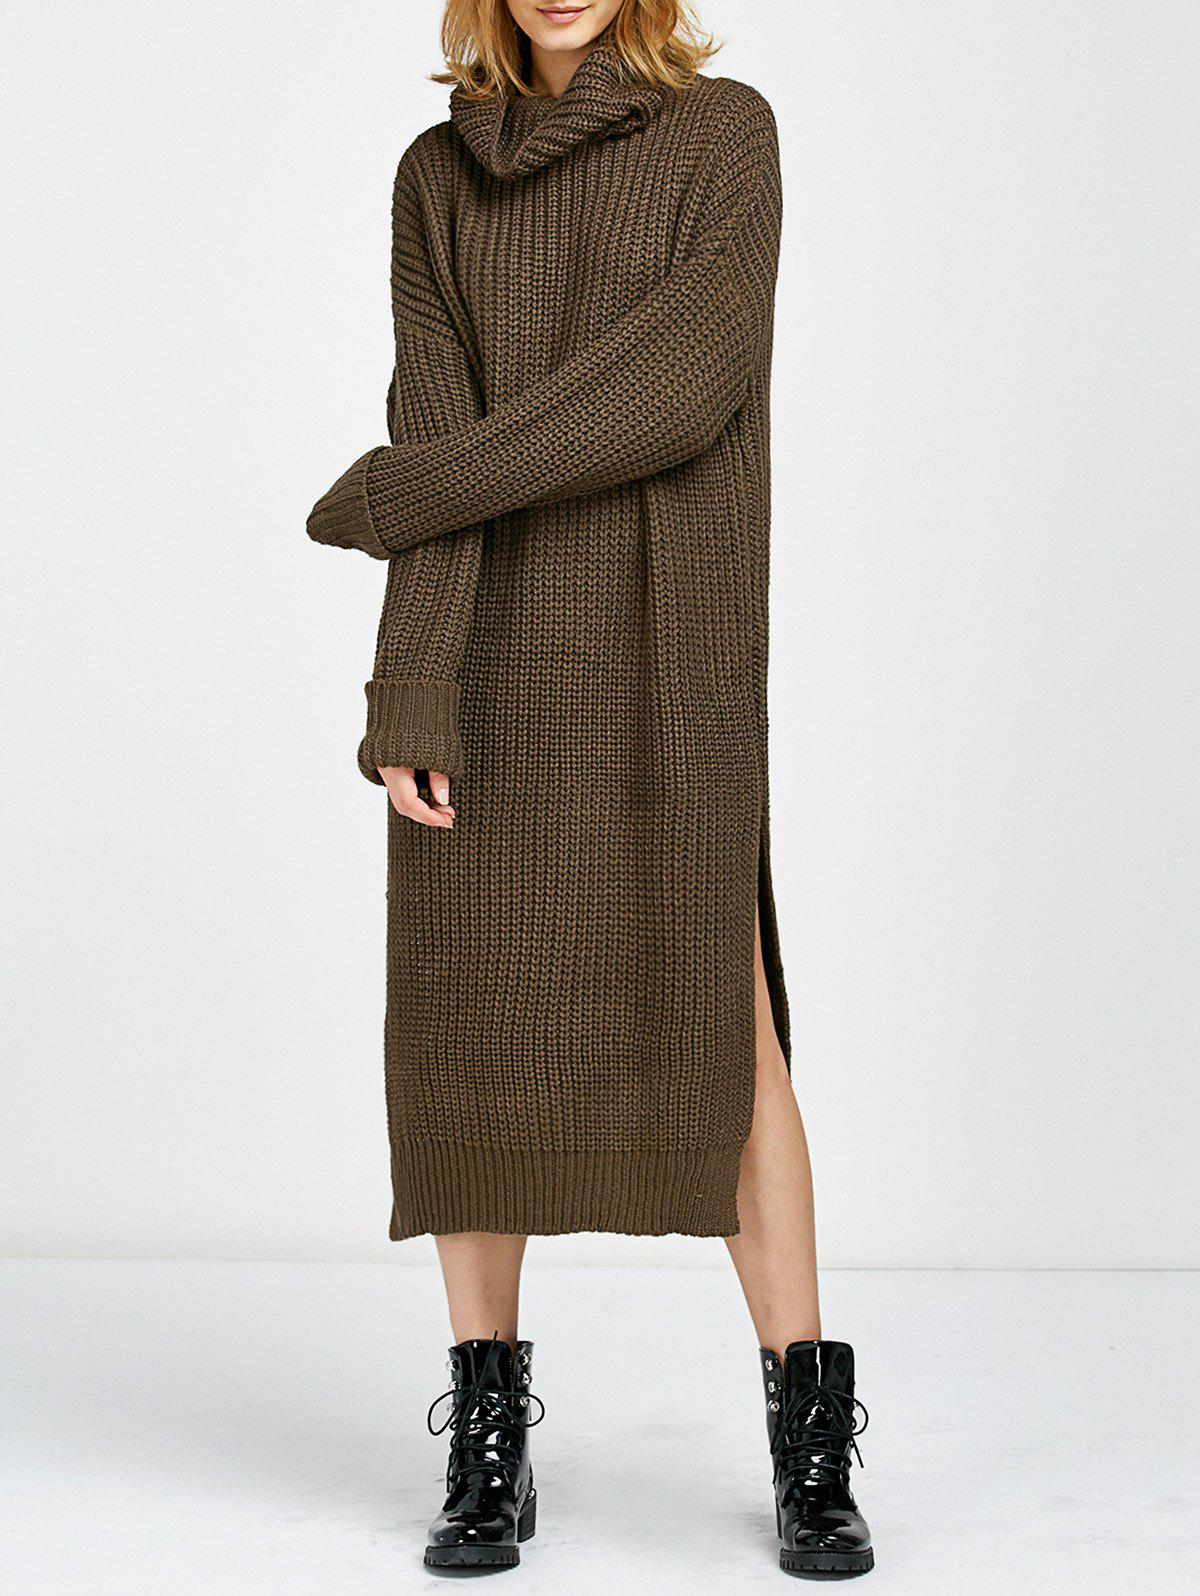 Cowl Neck Slit Midi Sweater Jumper DressWOMEN<br><br>Size: ONE SIZE; Color: BROWN; Style: Casual; Material: Cotton,Polyester; Silhouette: Straight; Dresses Length: Mid-Calf; Neckline: Cowl Neck; Sleeve Length: Long Sleeves; Pattern Type: Solid; Elasticity: Elastic; With Belt: No; Season: Fall,Winter; Weight: 0.6700kg; Package Contents: 1x Dress;